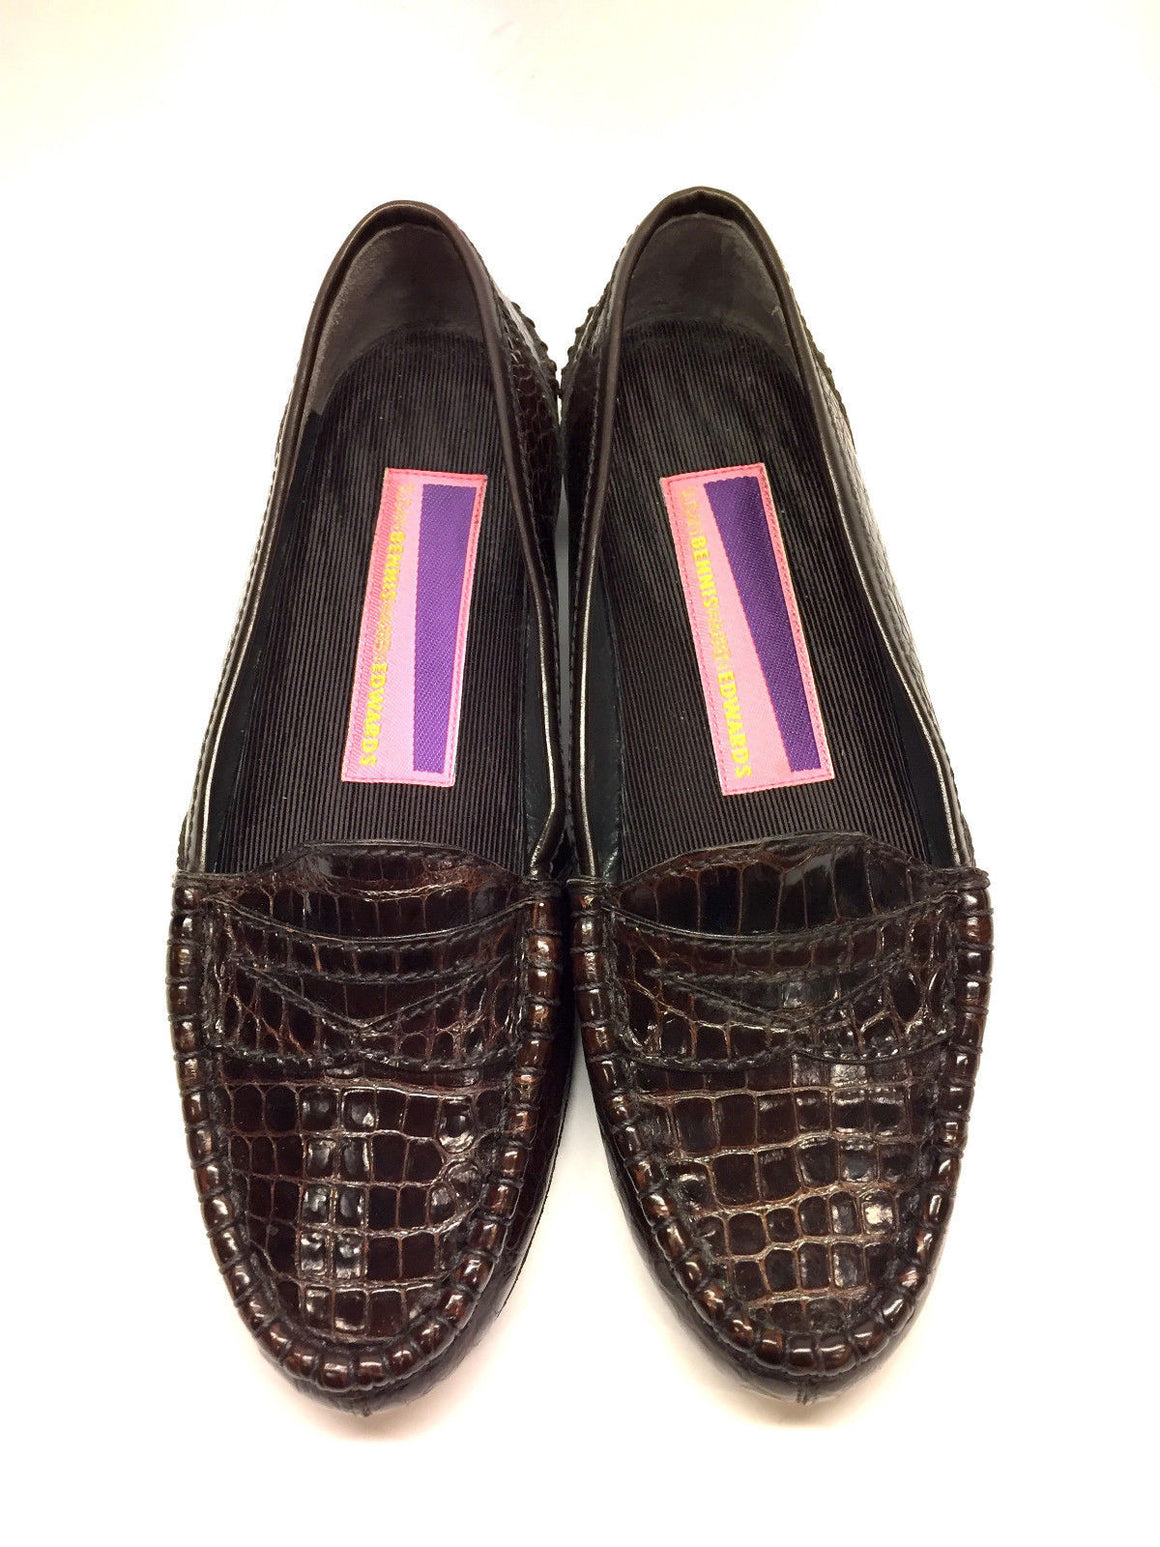 bisbiz.com SUSAN BENNIS / WARREN EDWARDS   Brown Croc Skin Flat Penny Loafers Shoes  Size: 6 - Bis Luxury Resale